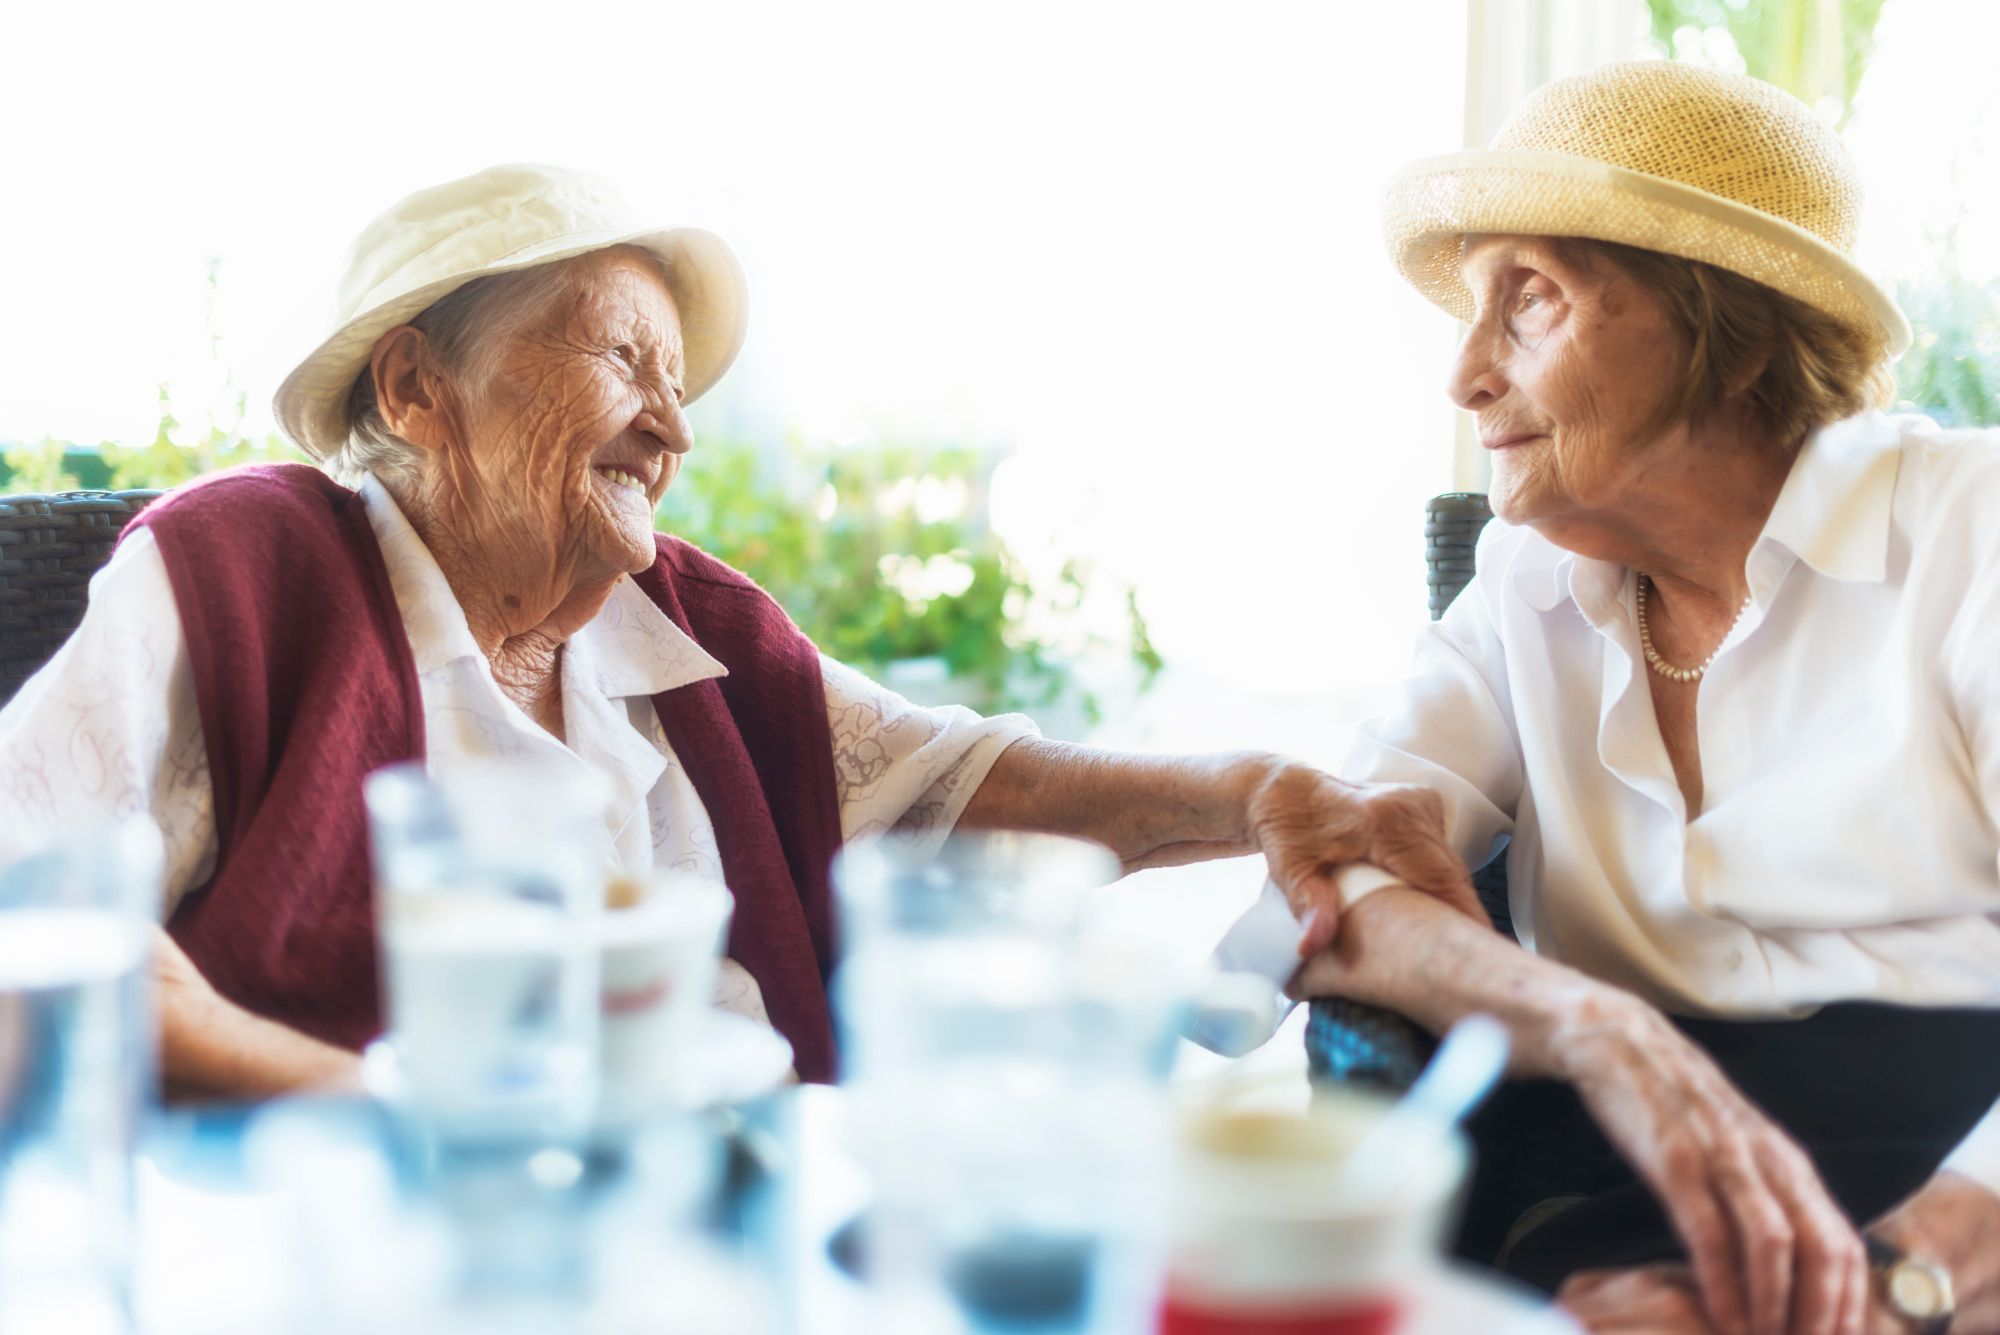 Senior Living residents holding the arm of another older woman as they sit wearing hats at an outdoor dining table and smile